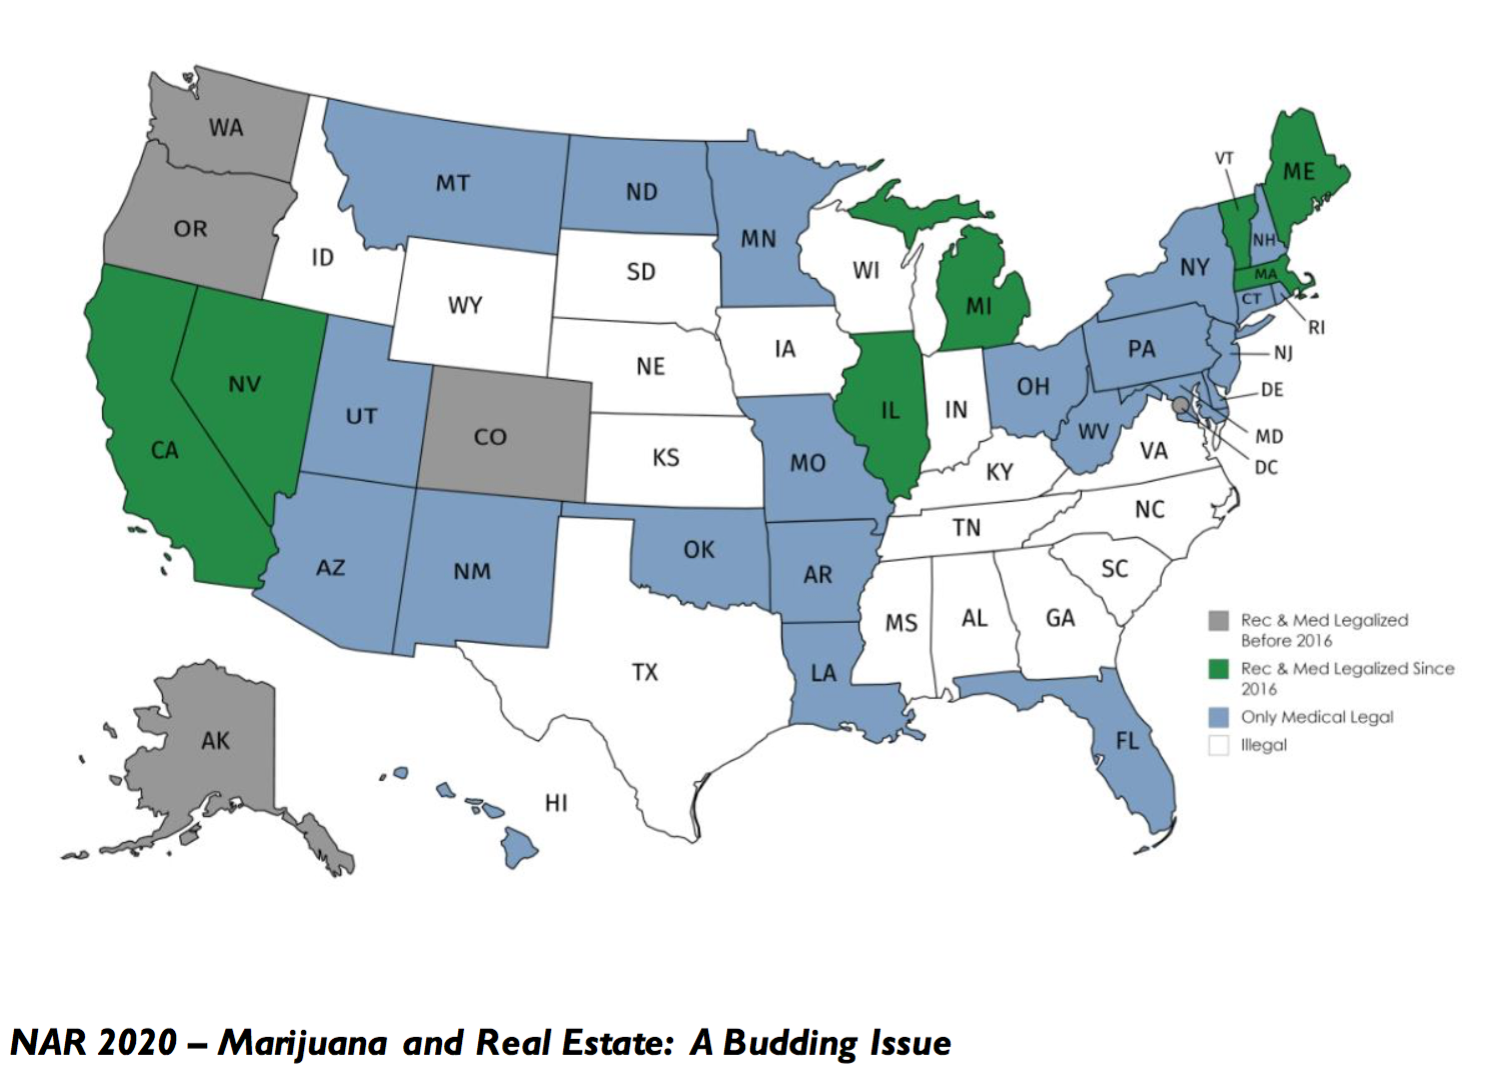 legalization map. Visit source link at the end of this article for more information.